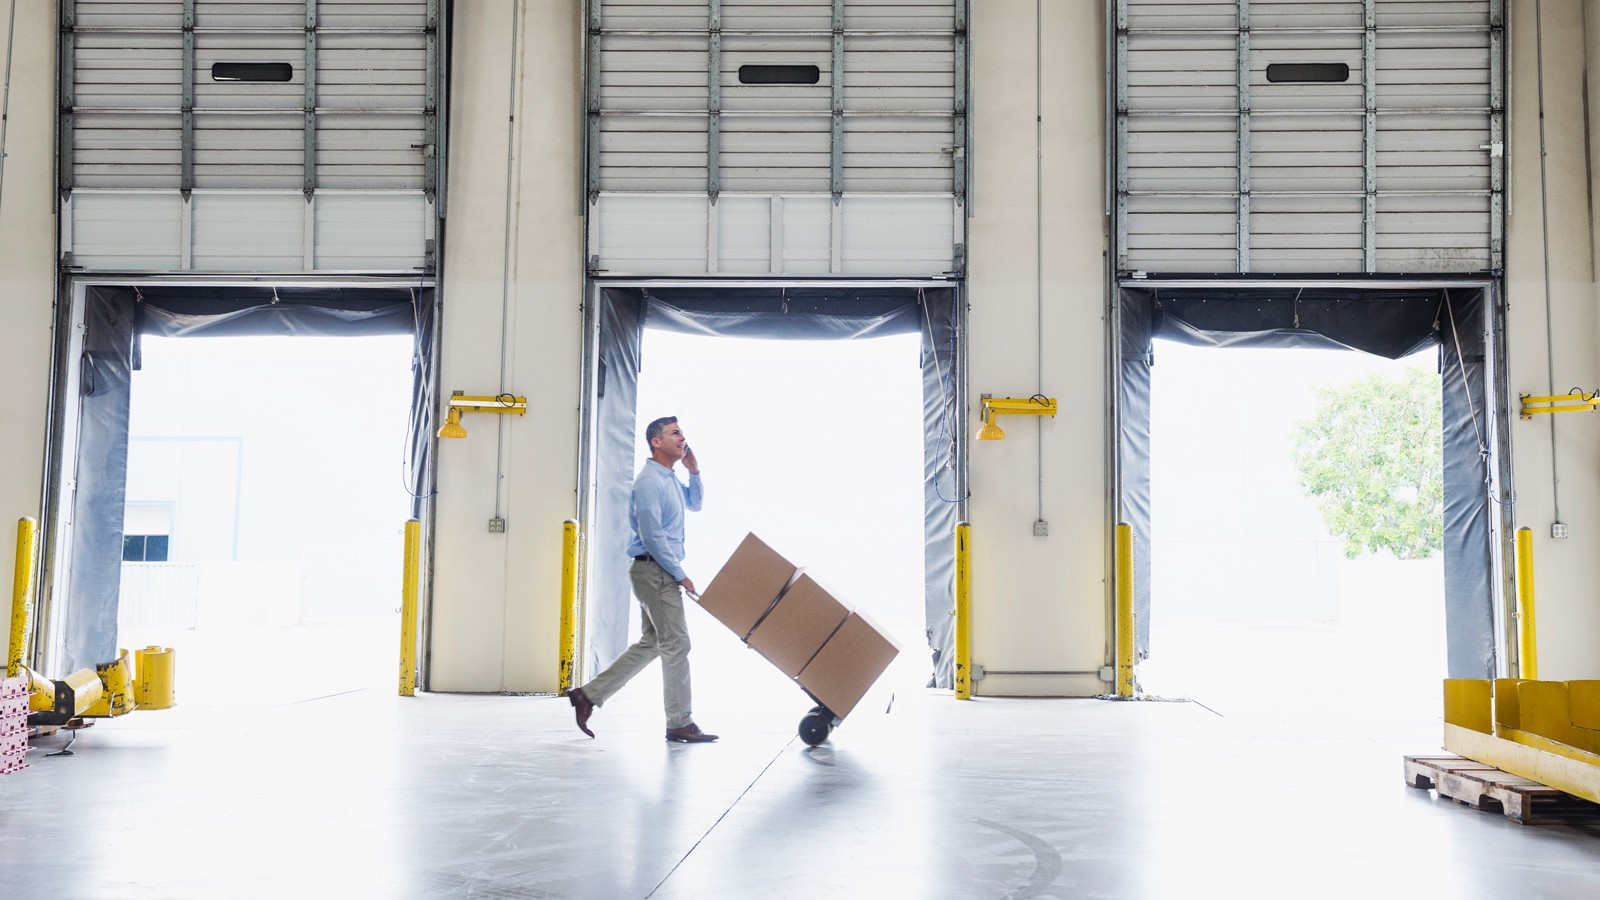 Pros and Cons of a Self Storage Business